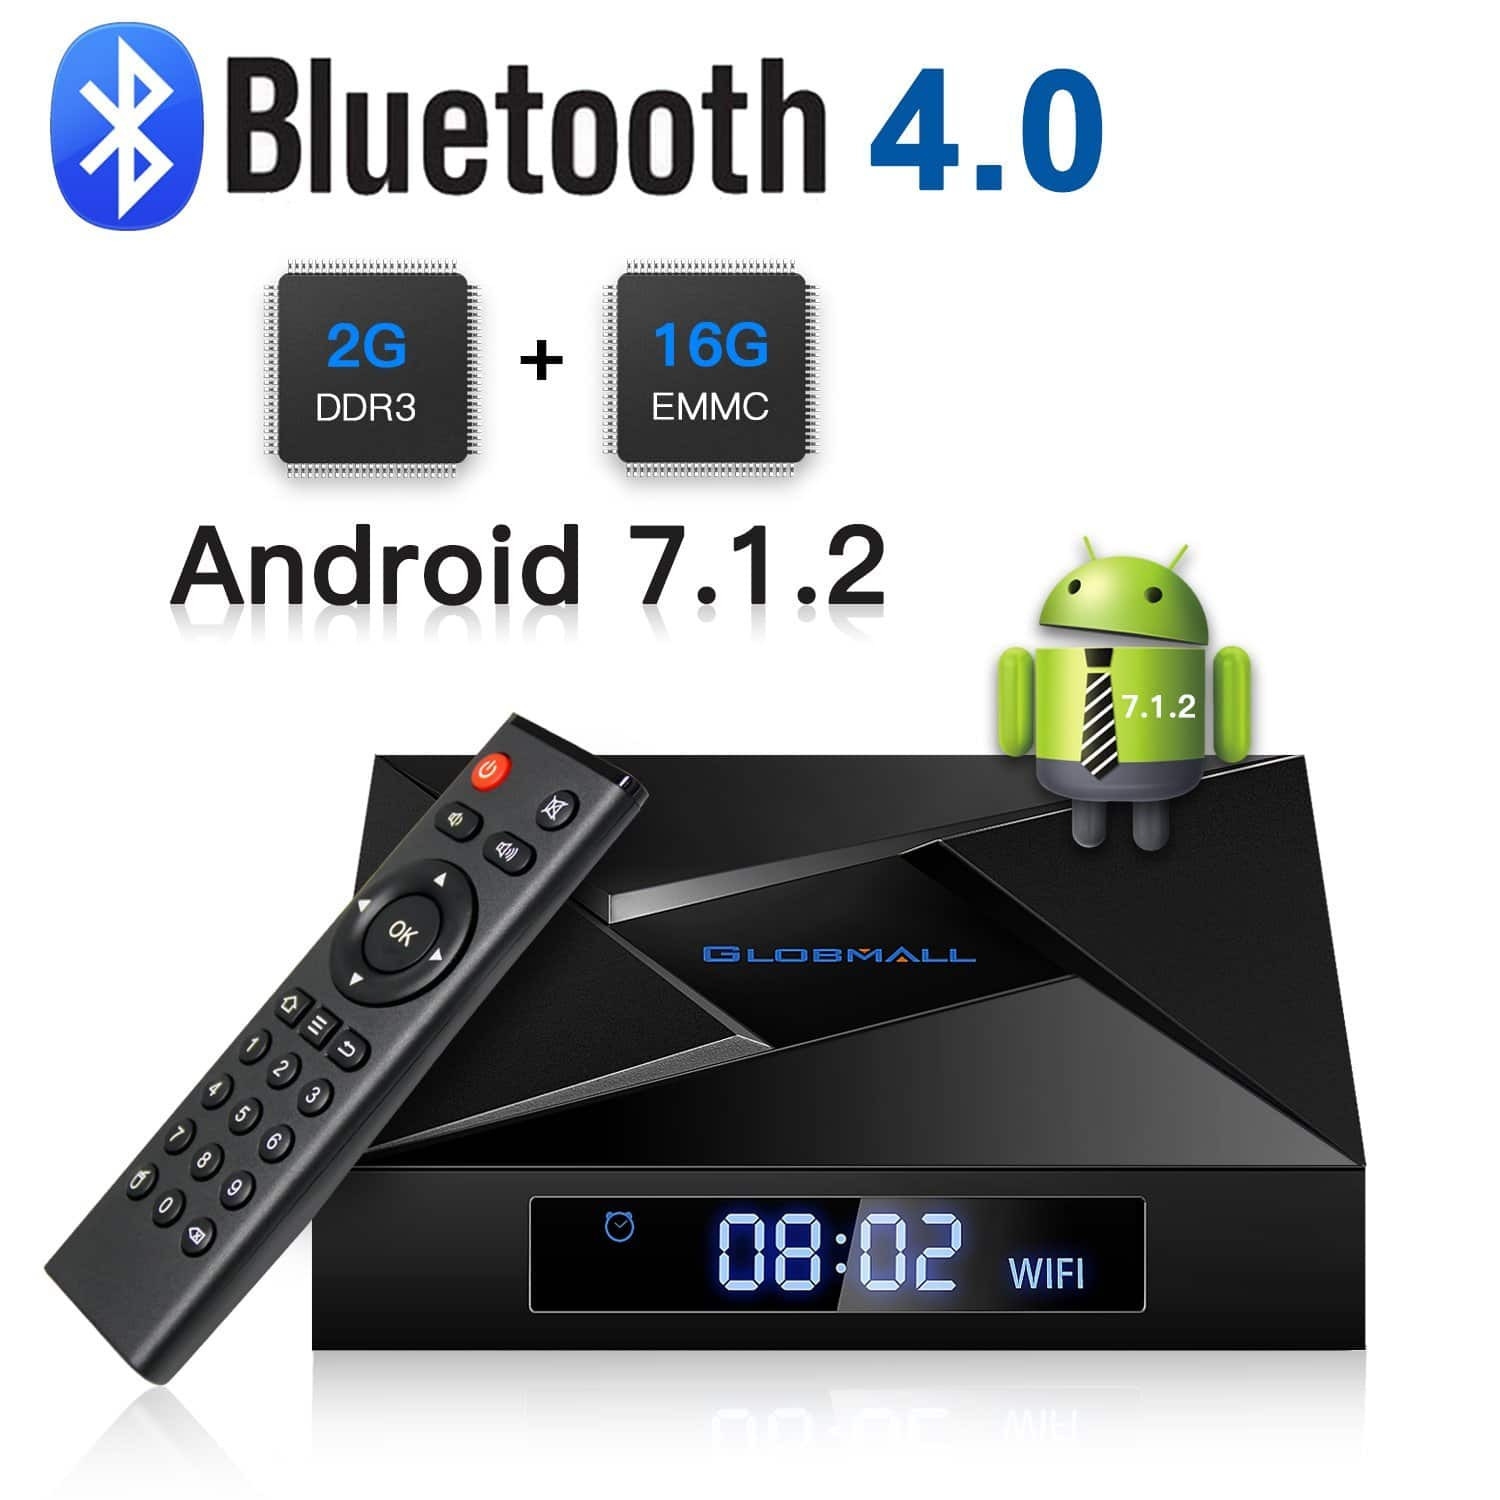 Quad Core 64 Bits 4K Android 7.1 TV Box 2GB RAM+16GB ROM with Bluetooth 4.0 and WiFi (2018 Newest Version) @Prime F/S $44.84